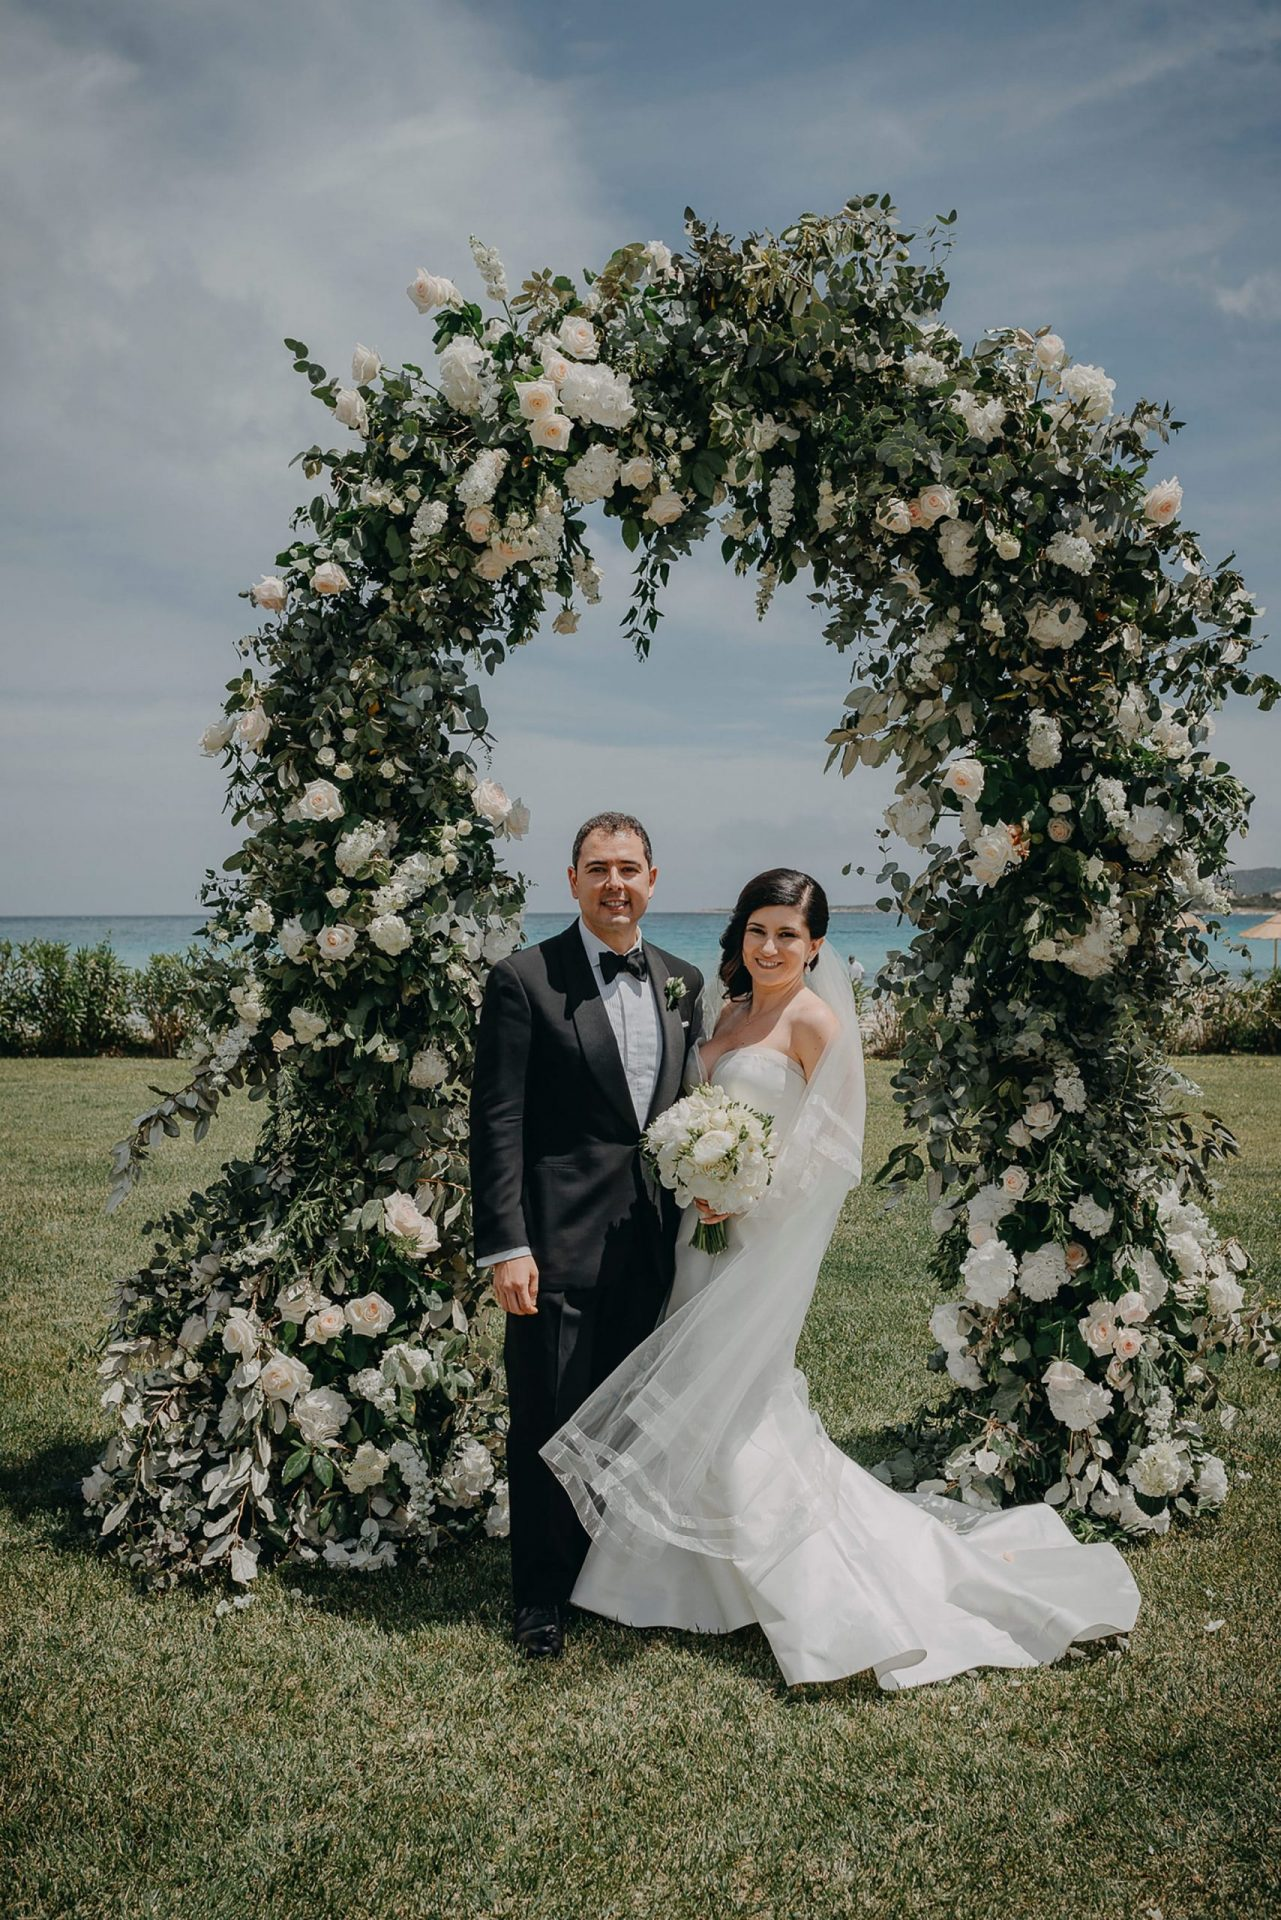 Luca and Anj, great flowers arch